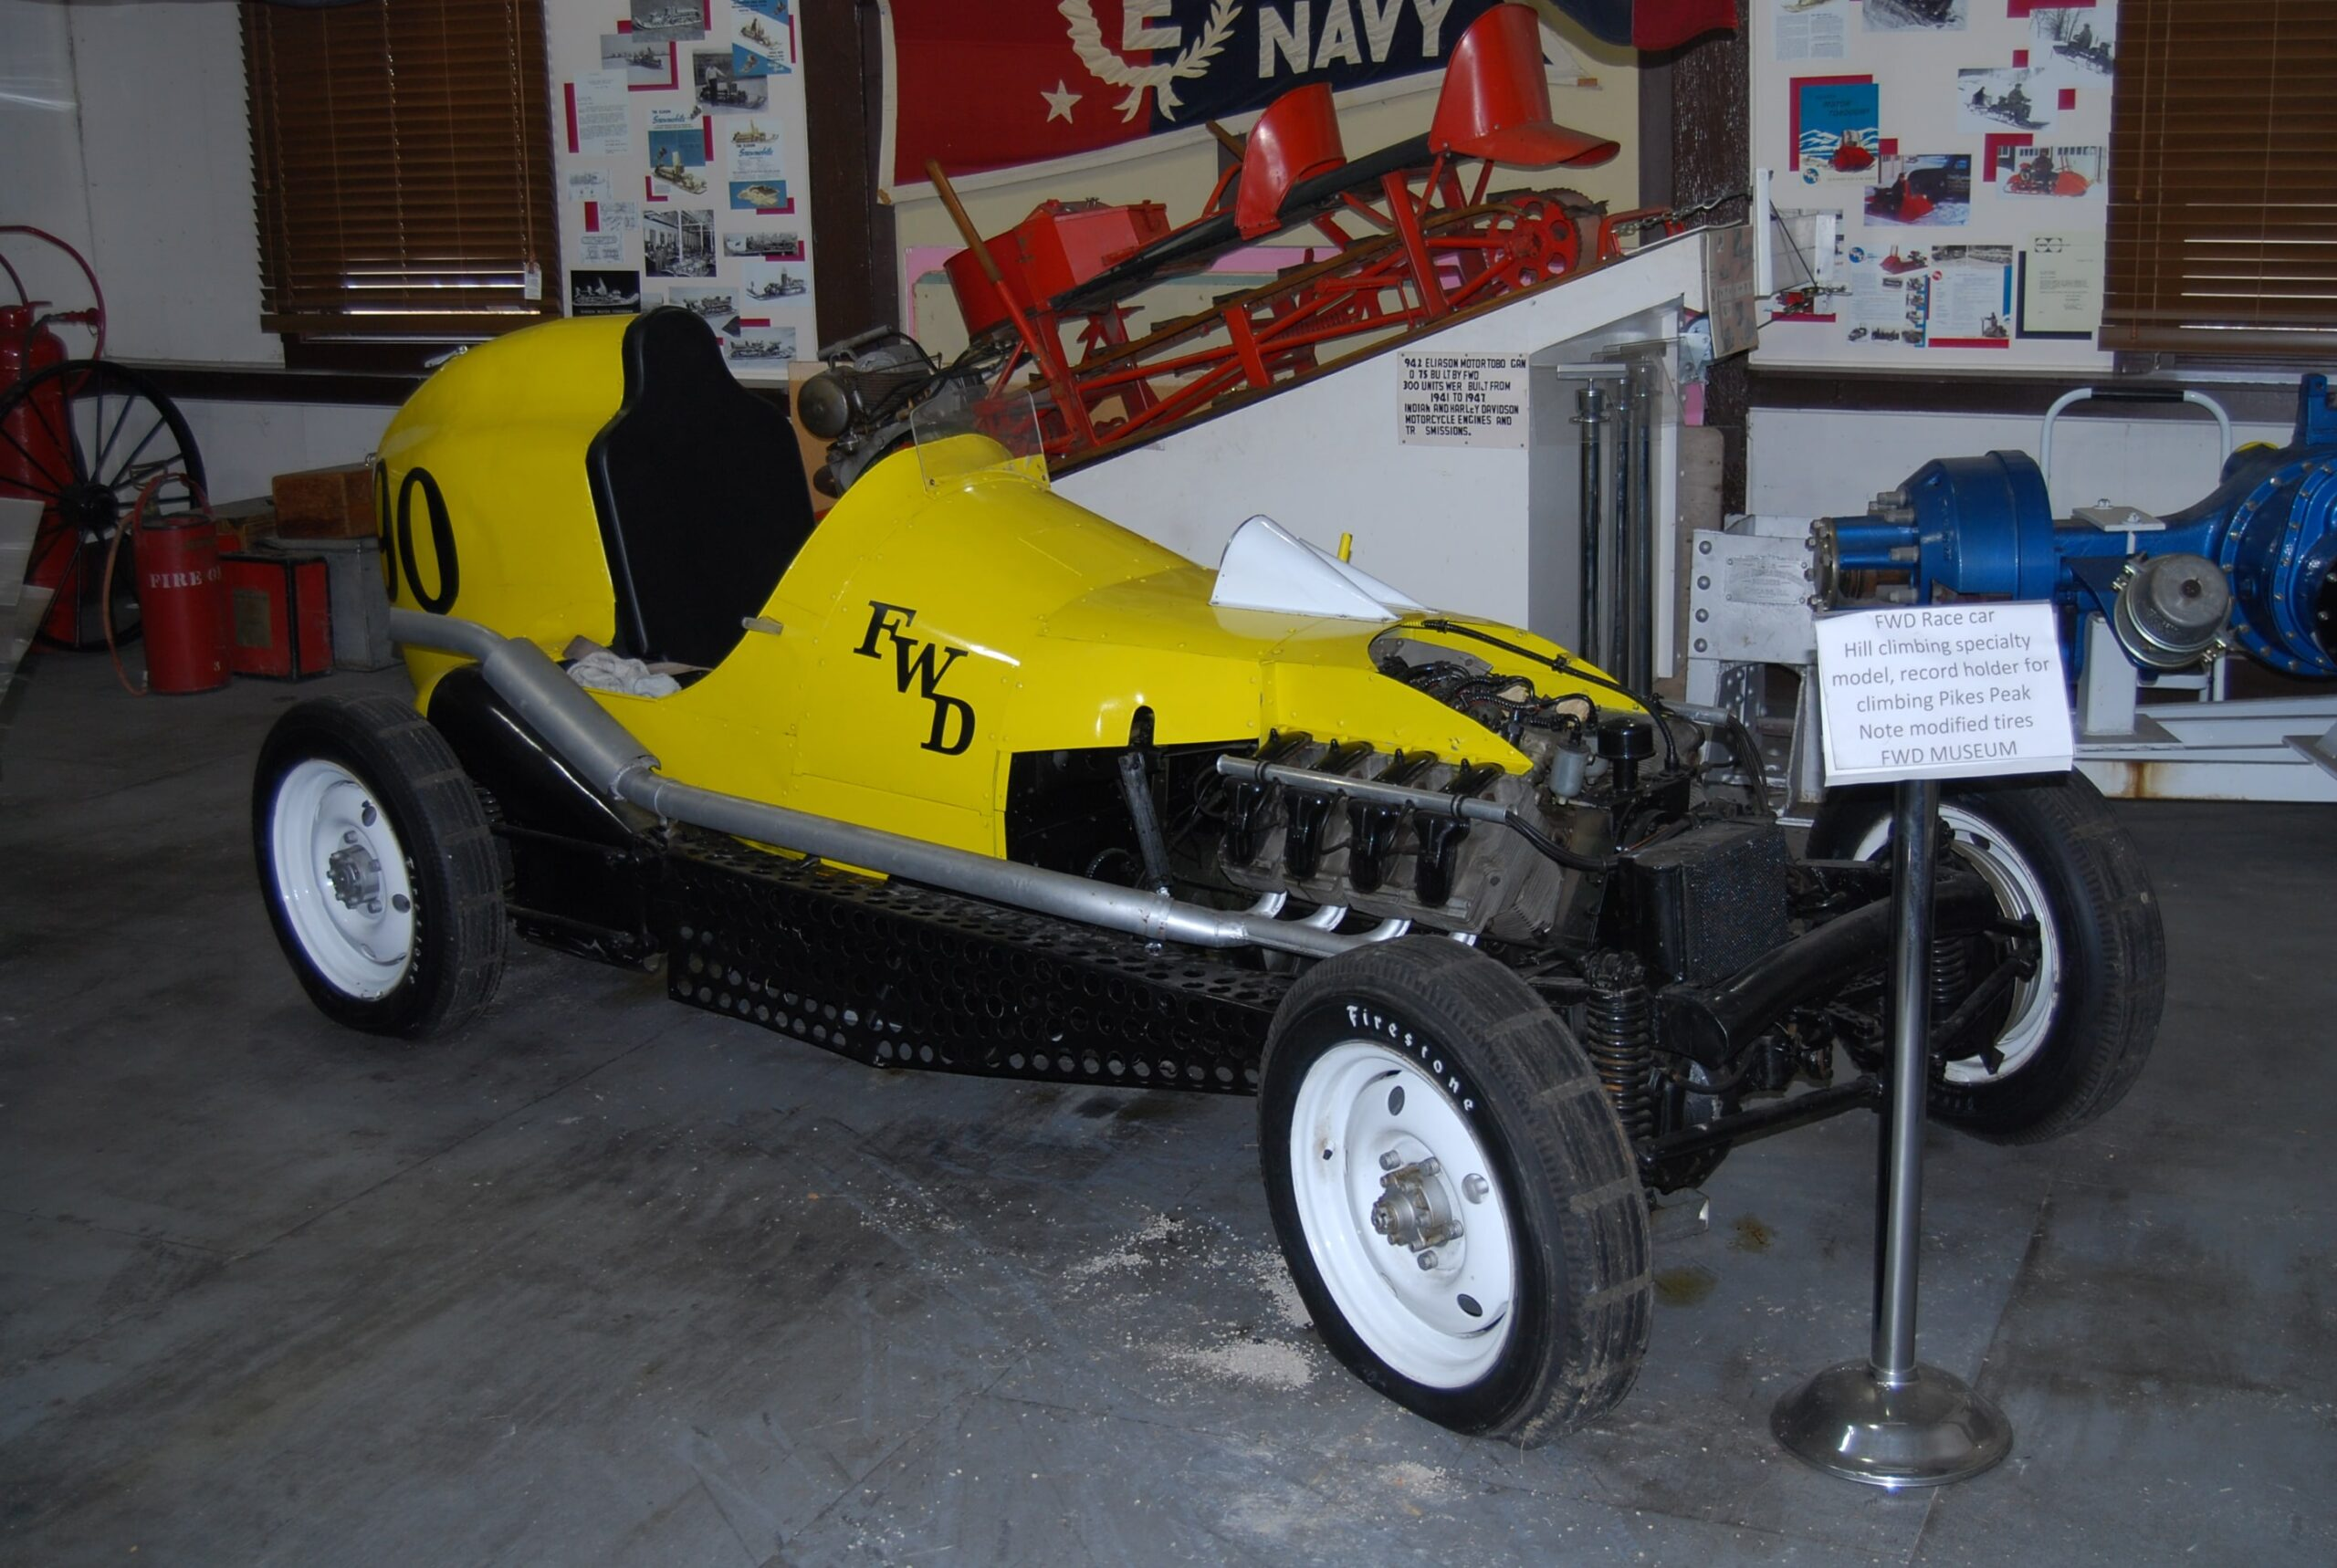 Steyer-Powered 4WD Butterball Racer Causes Stir at Freedom